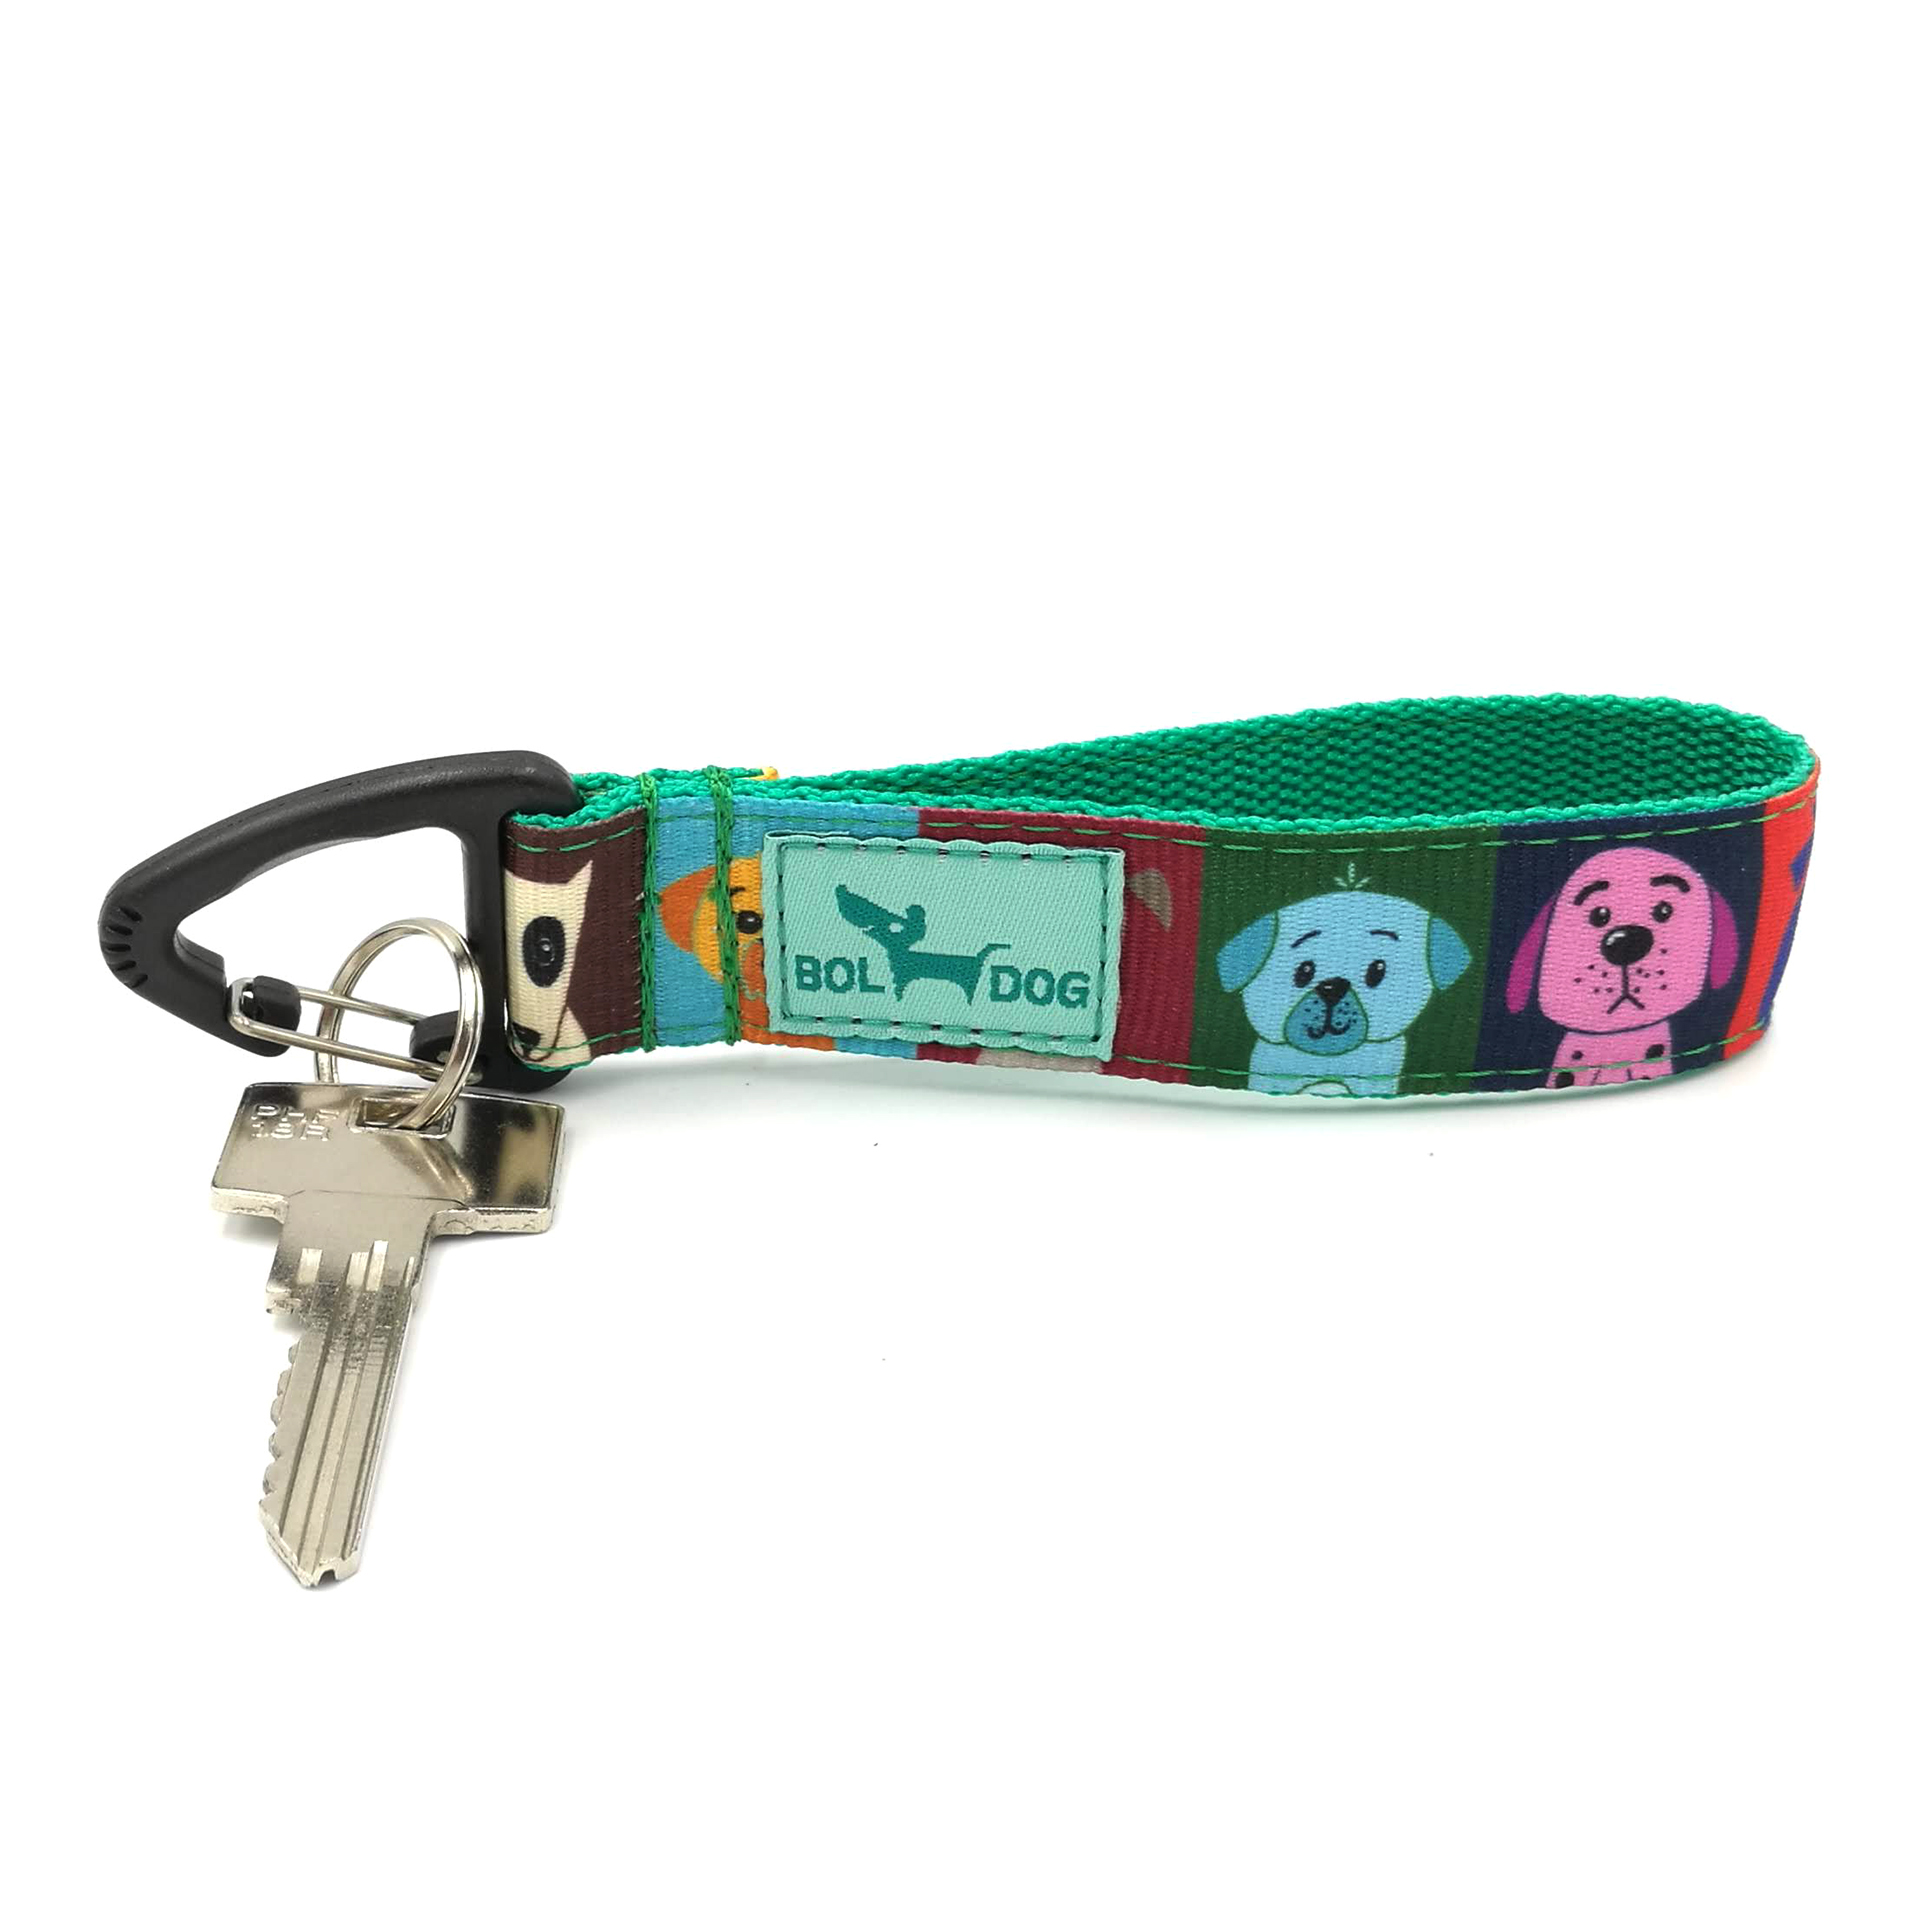 Dog school key holder